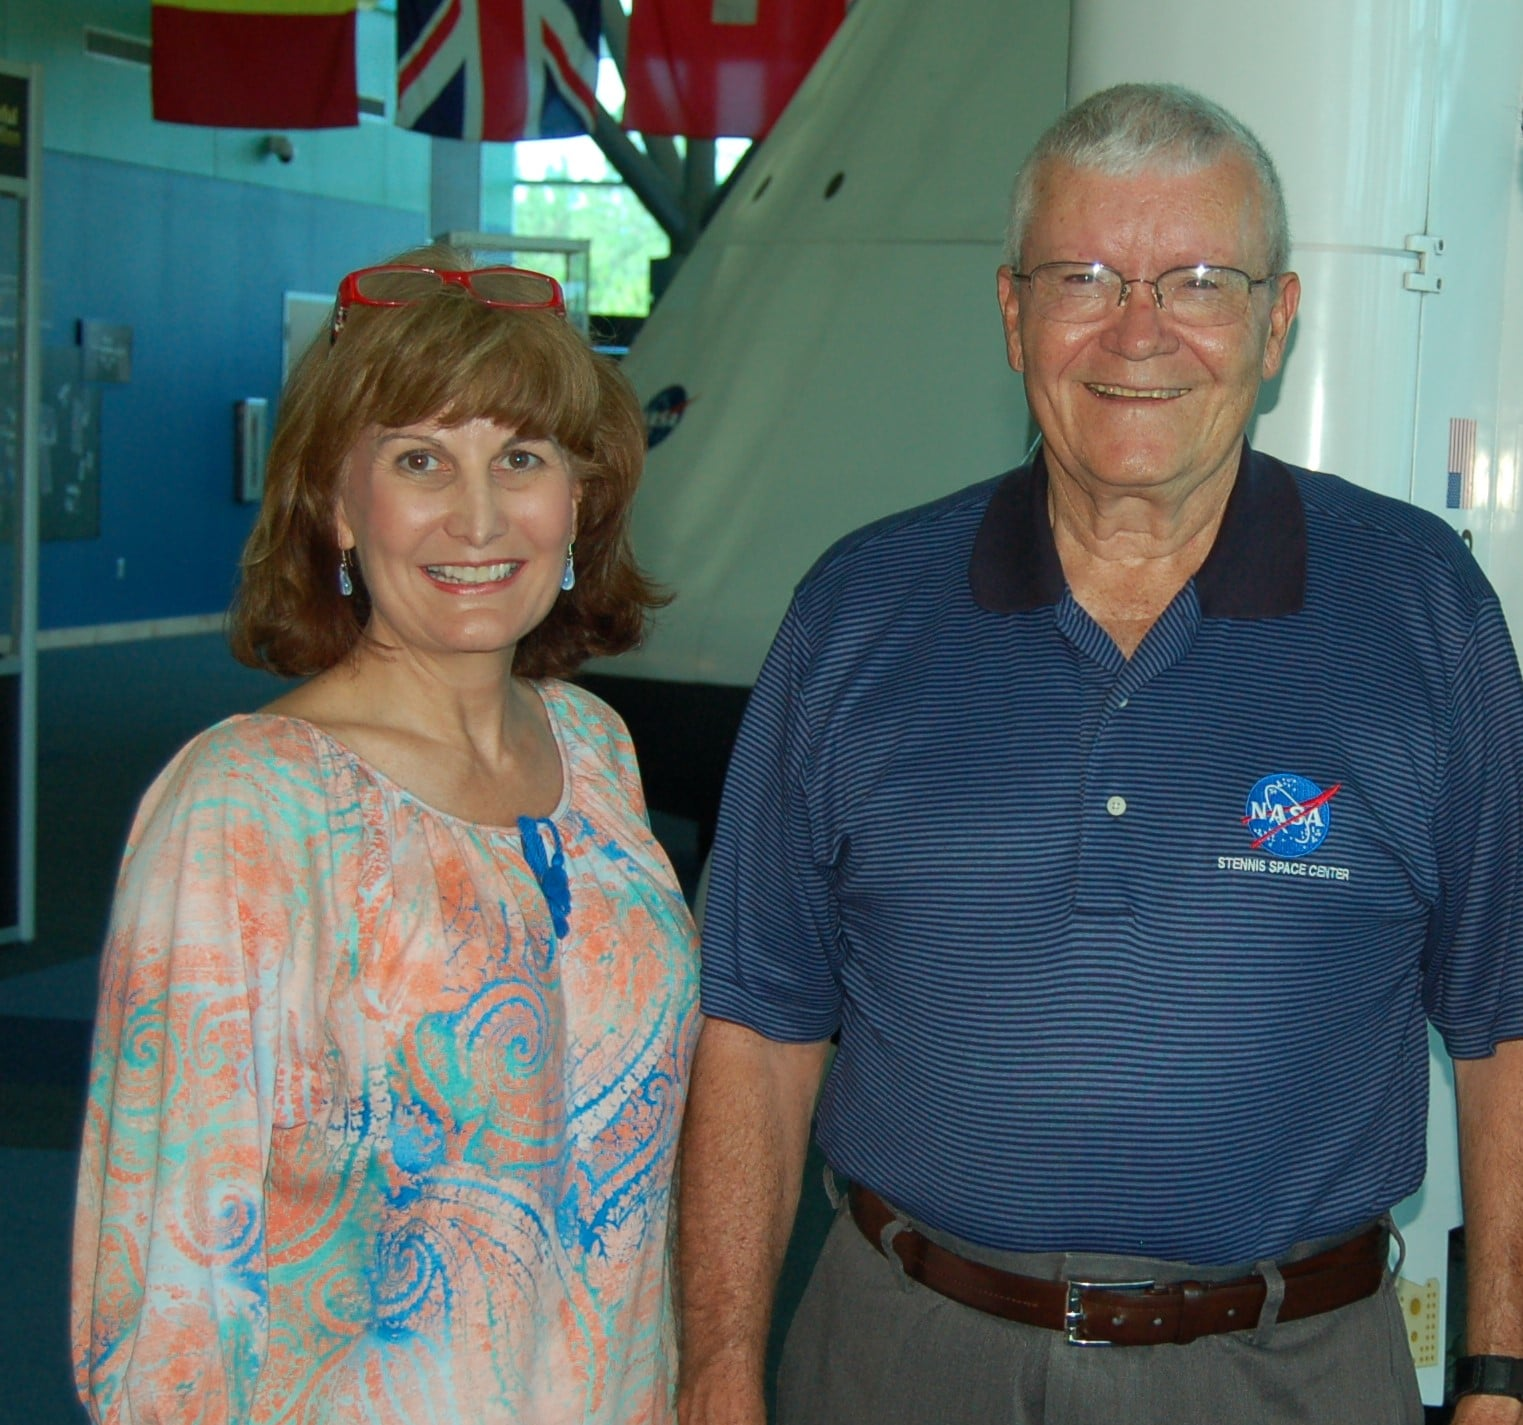 Nancy Jo Maples and Astronaut Fred Haise